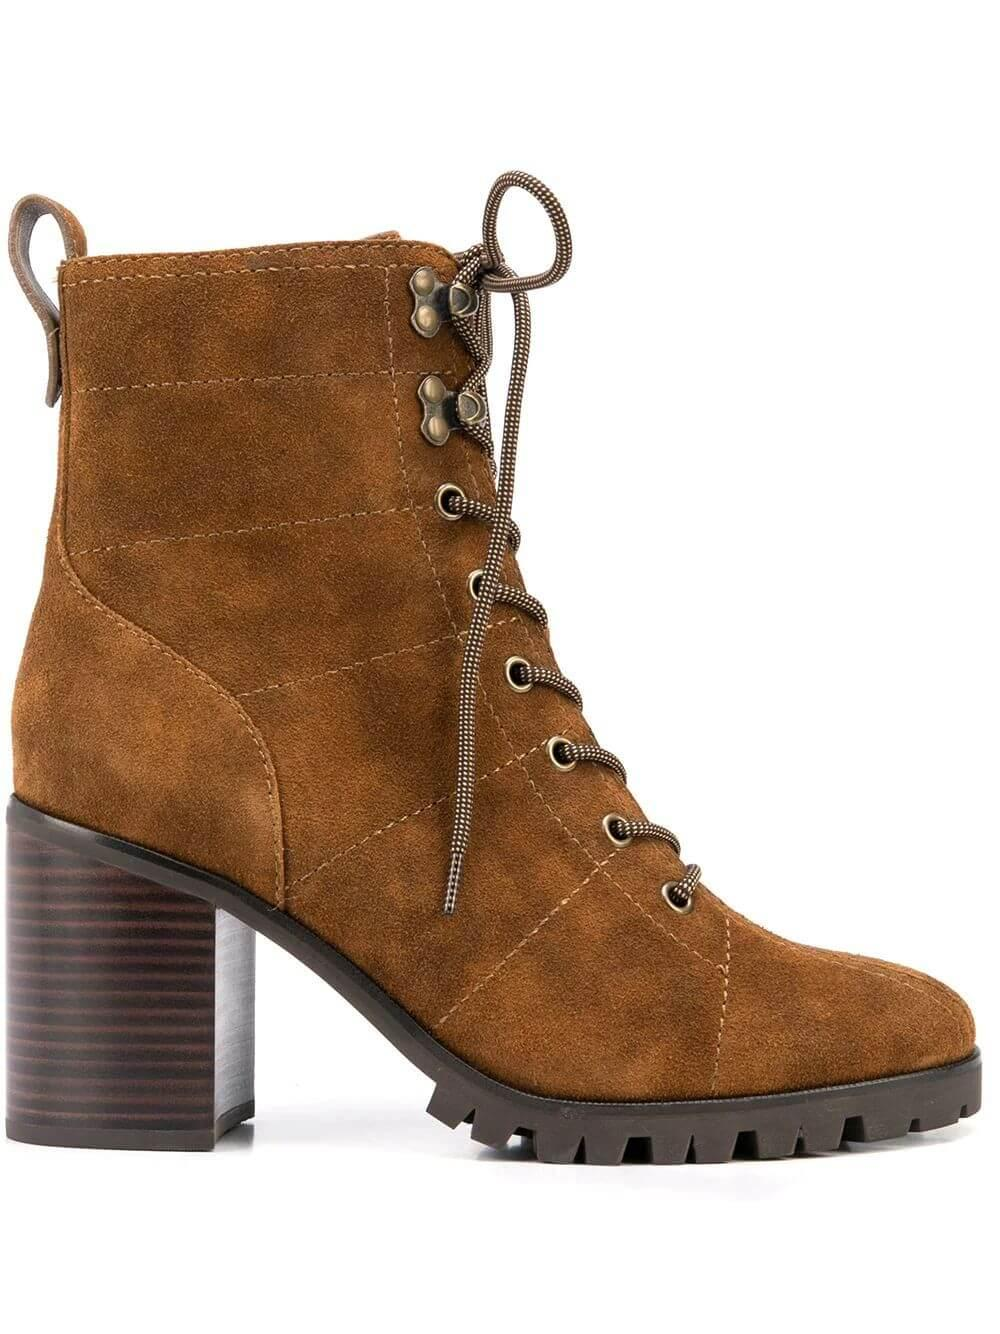 Christie Lace Up Boot Item # CHRISTIE